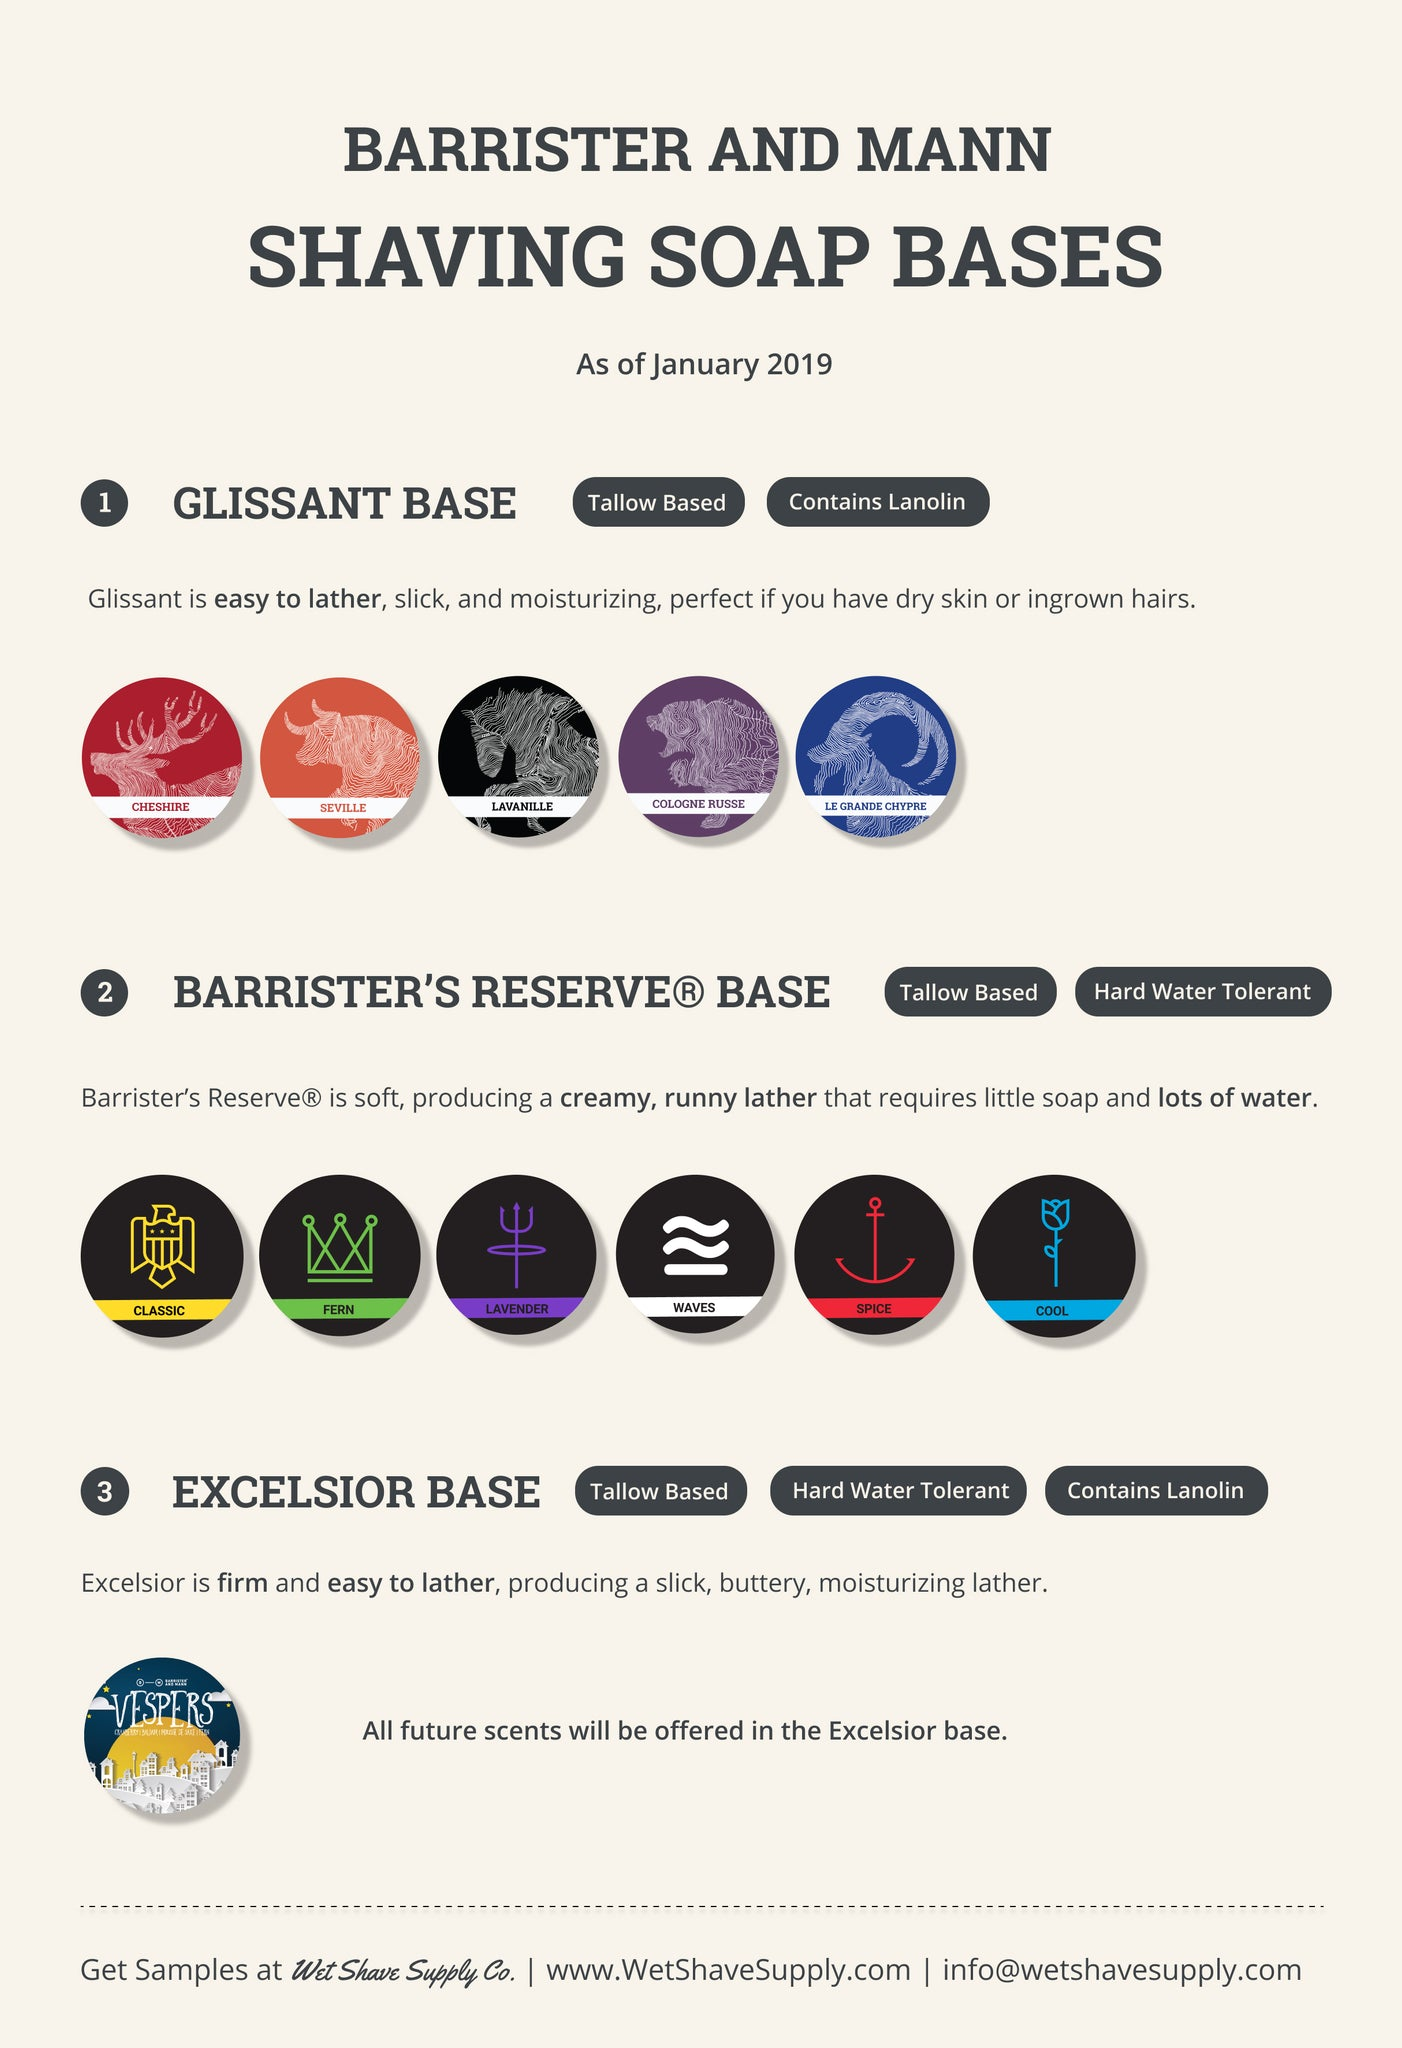 Barrister and Mann Shaving Soap Bases Infographic